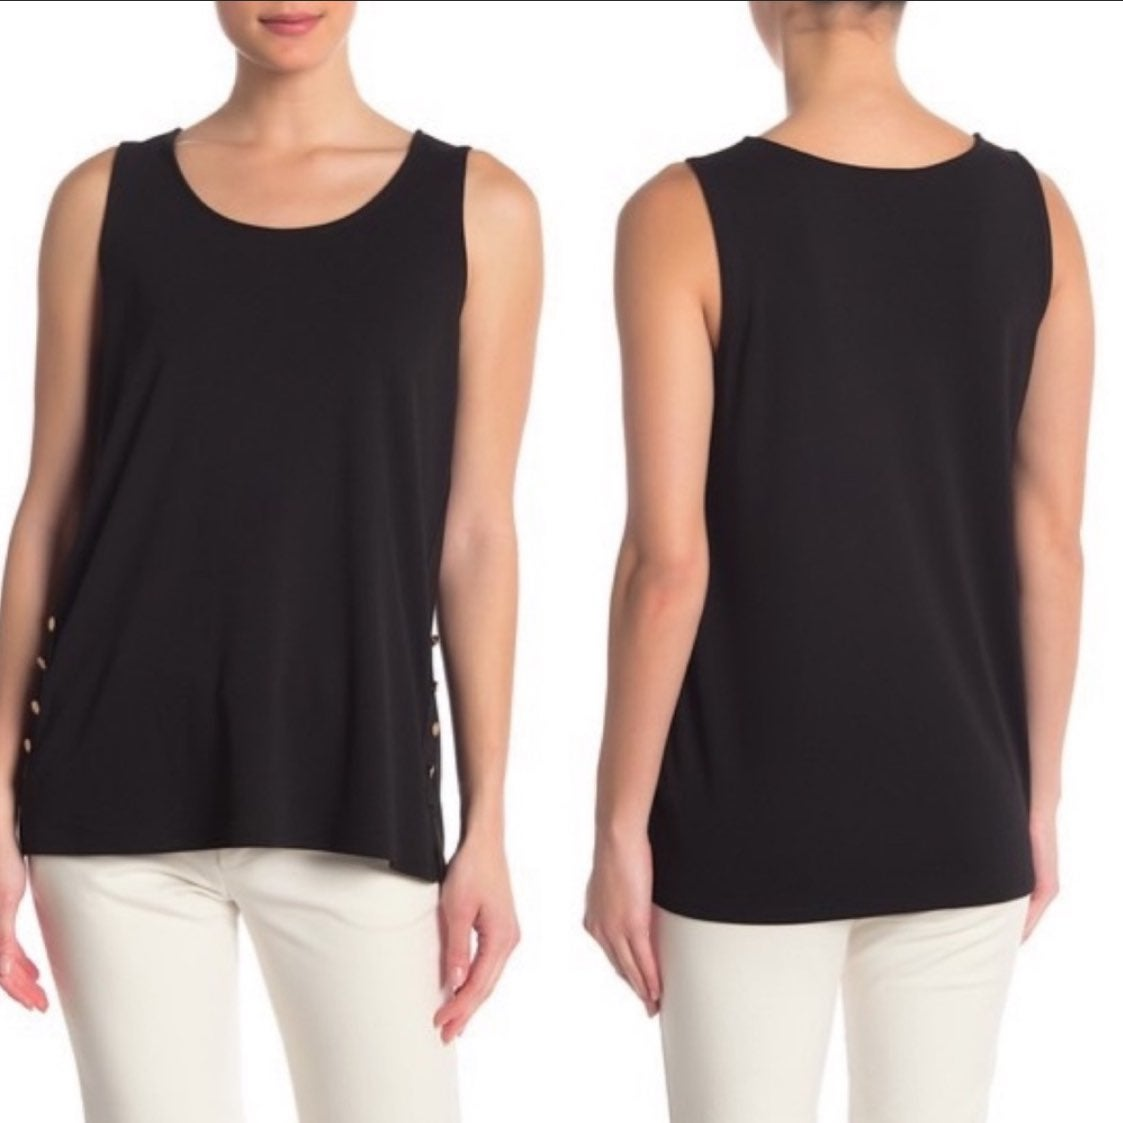 DKNY Side Button Sleeveless Top